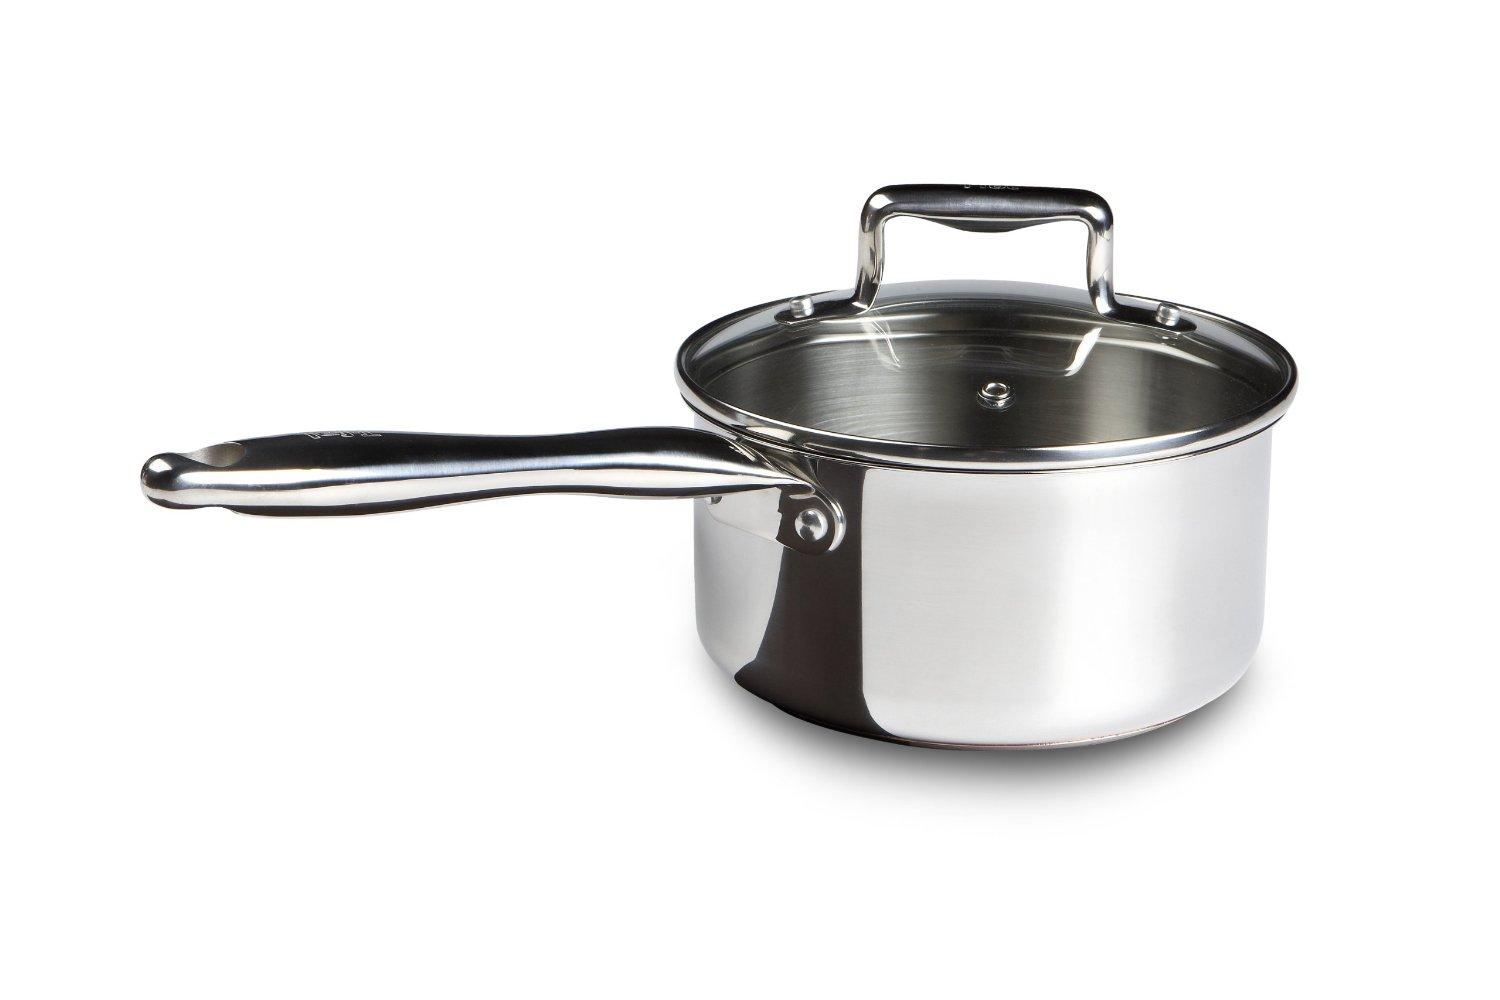 Discounted T Fal Performance Stainless Steel Copper